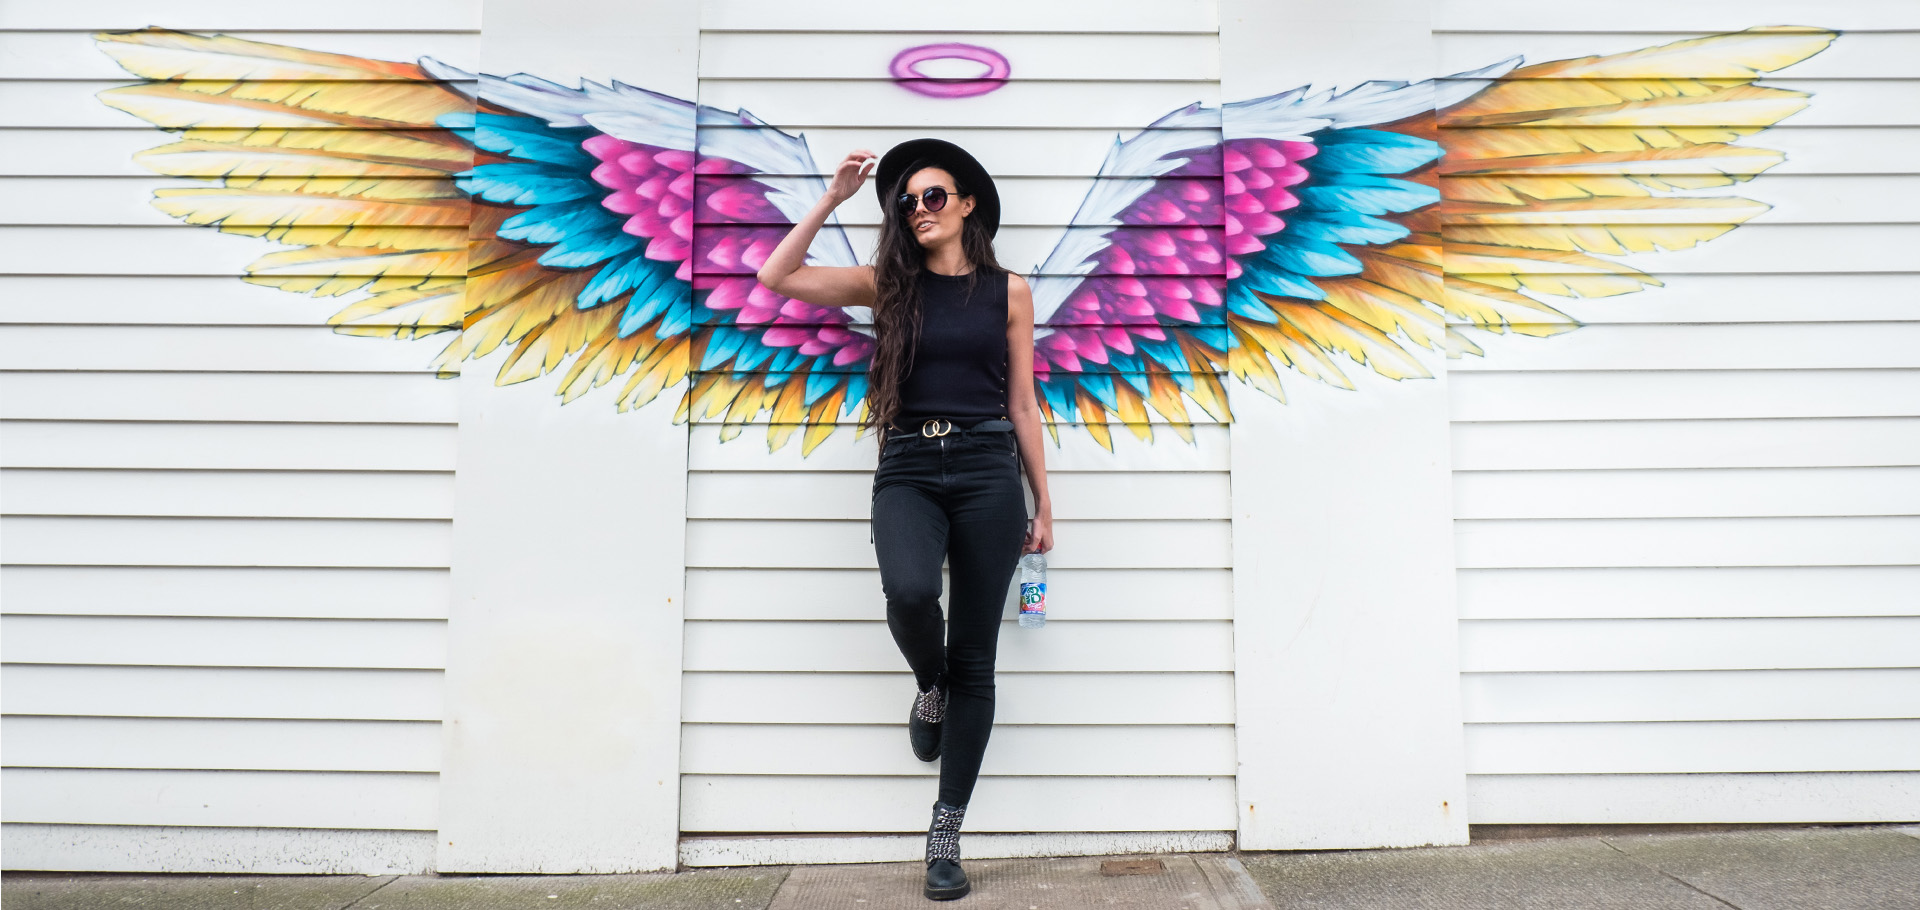 Mac-b photoshoot, a woman holding a bottle in front of a wing graphic on a wall